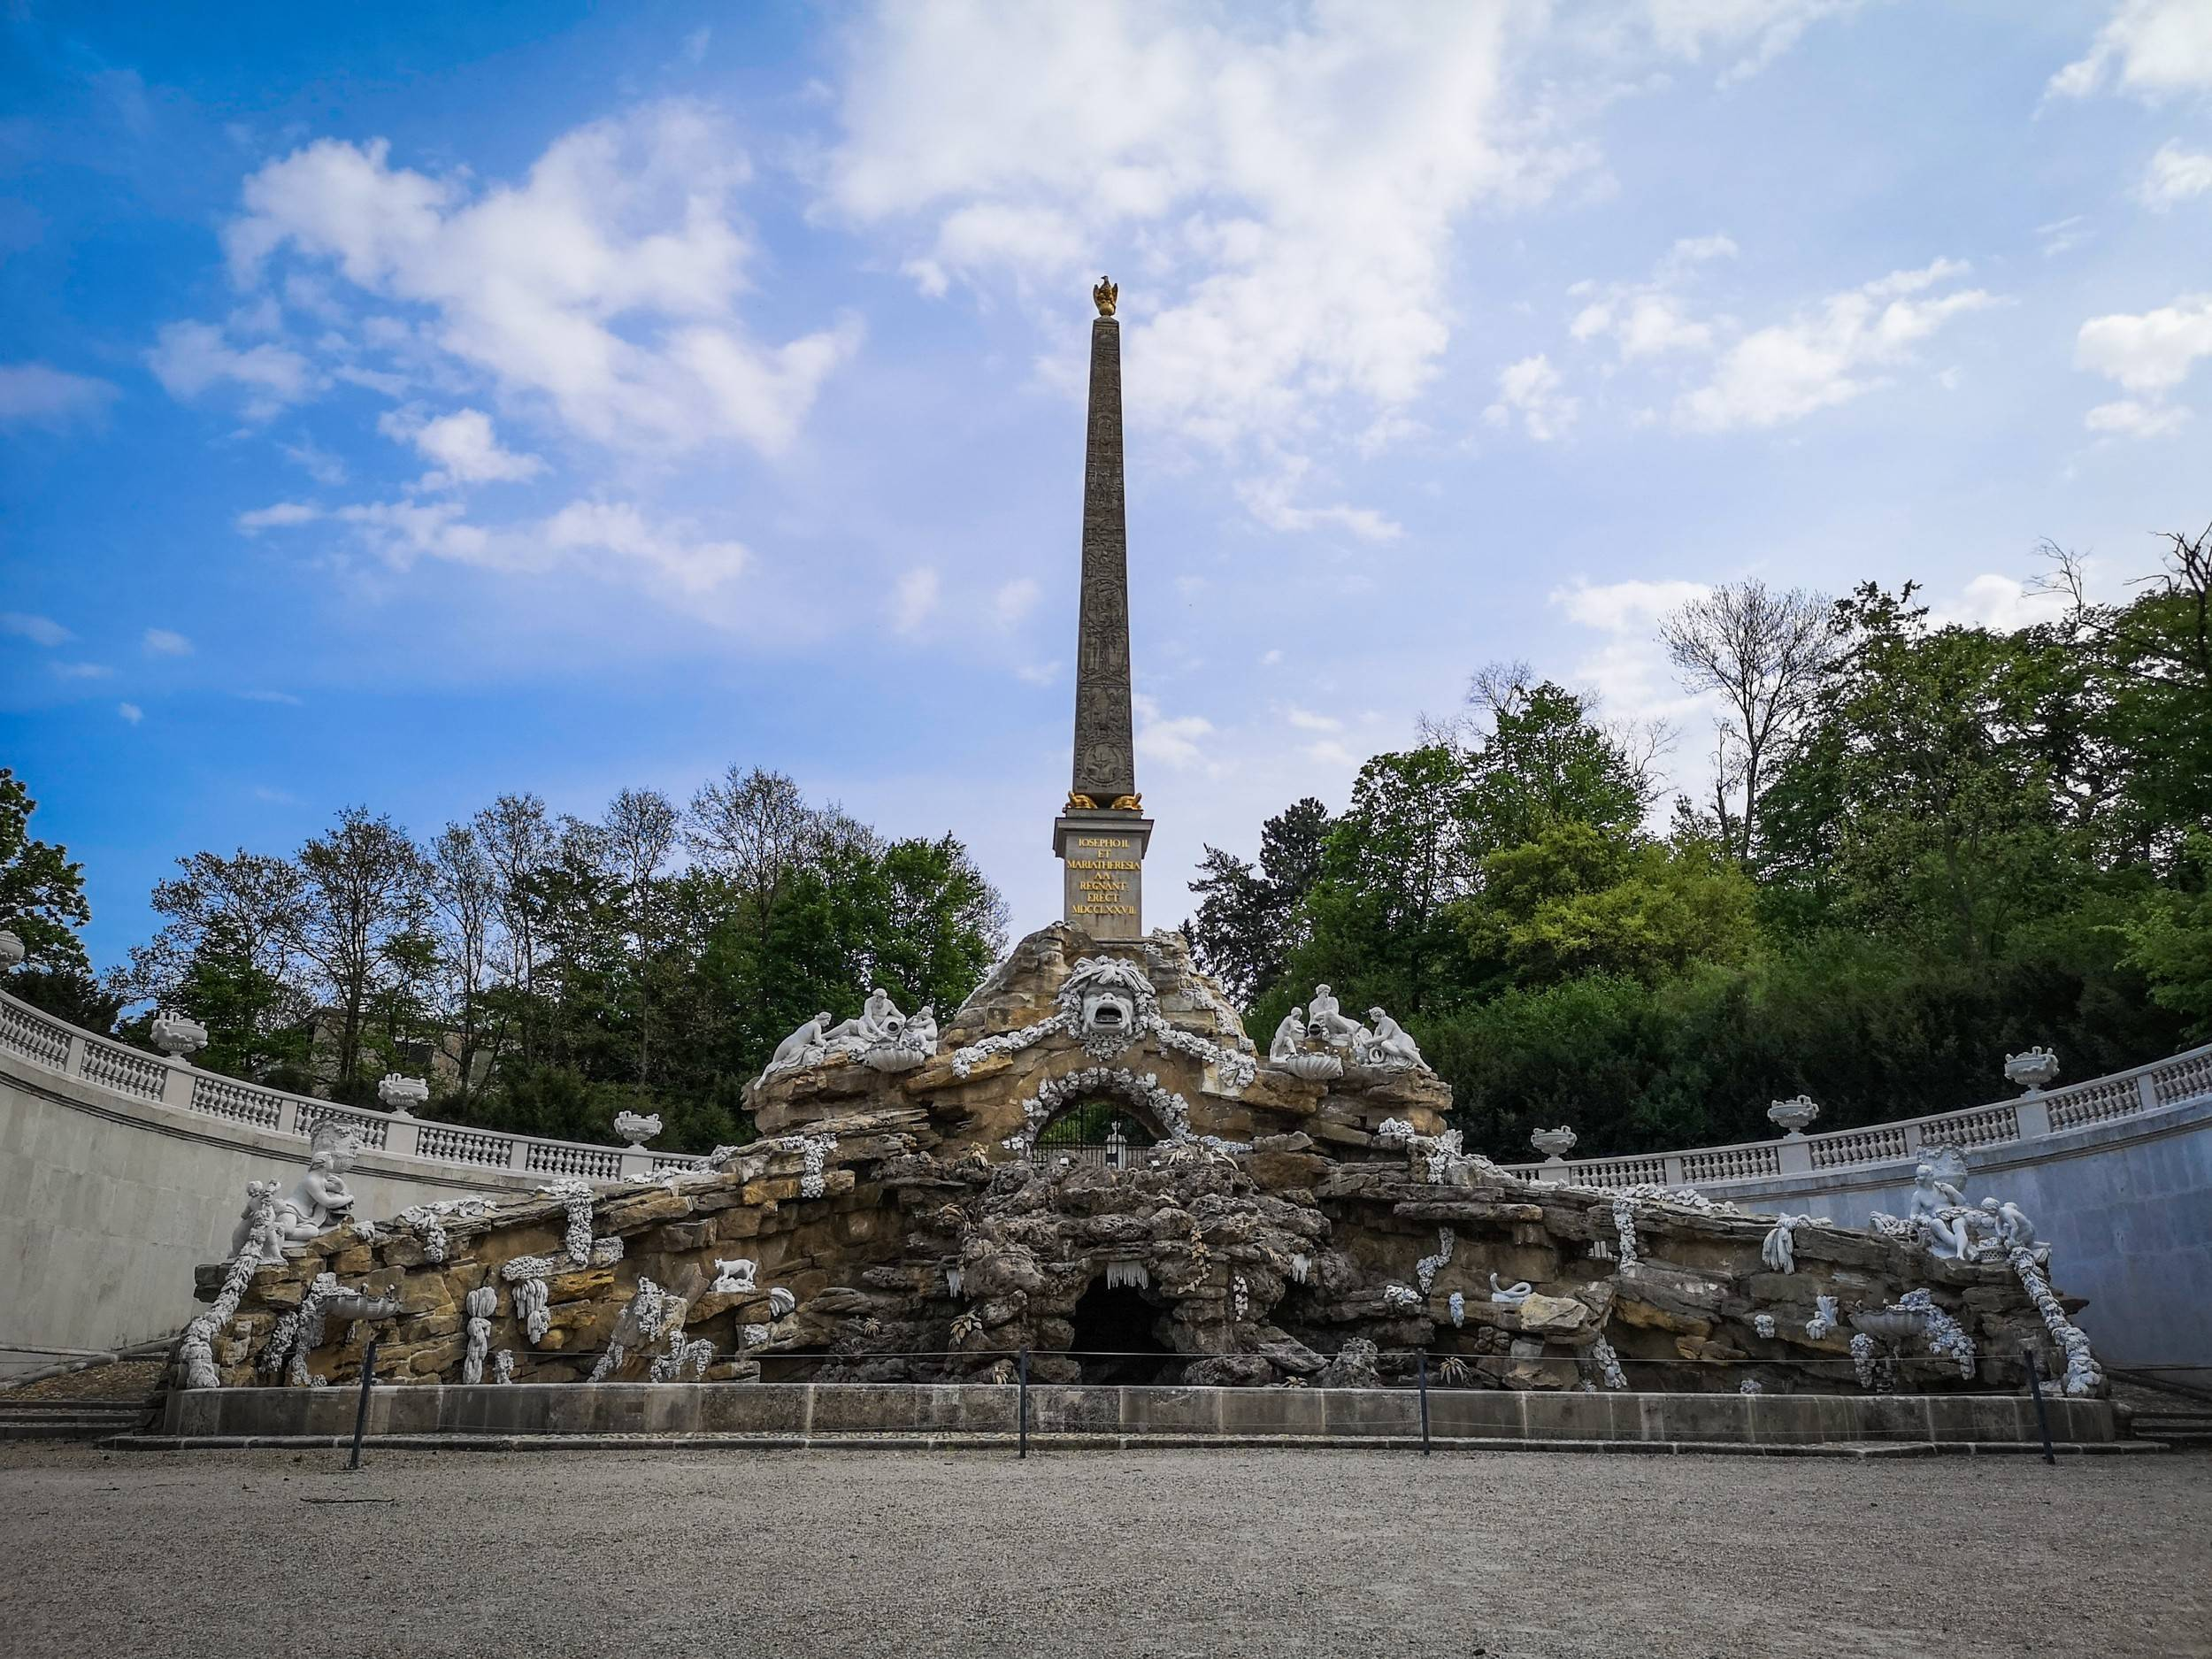 The Obelisk Fountain of Schönbrunn Palace Gardens, Vienna